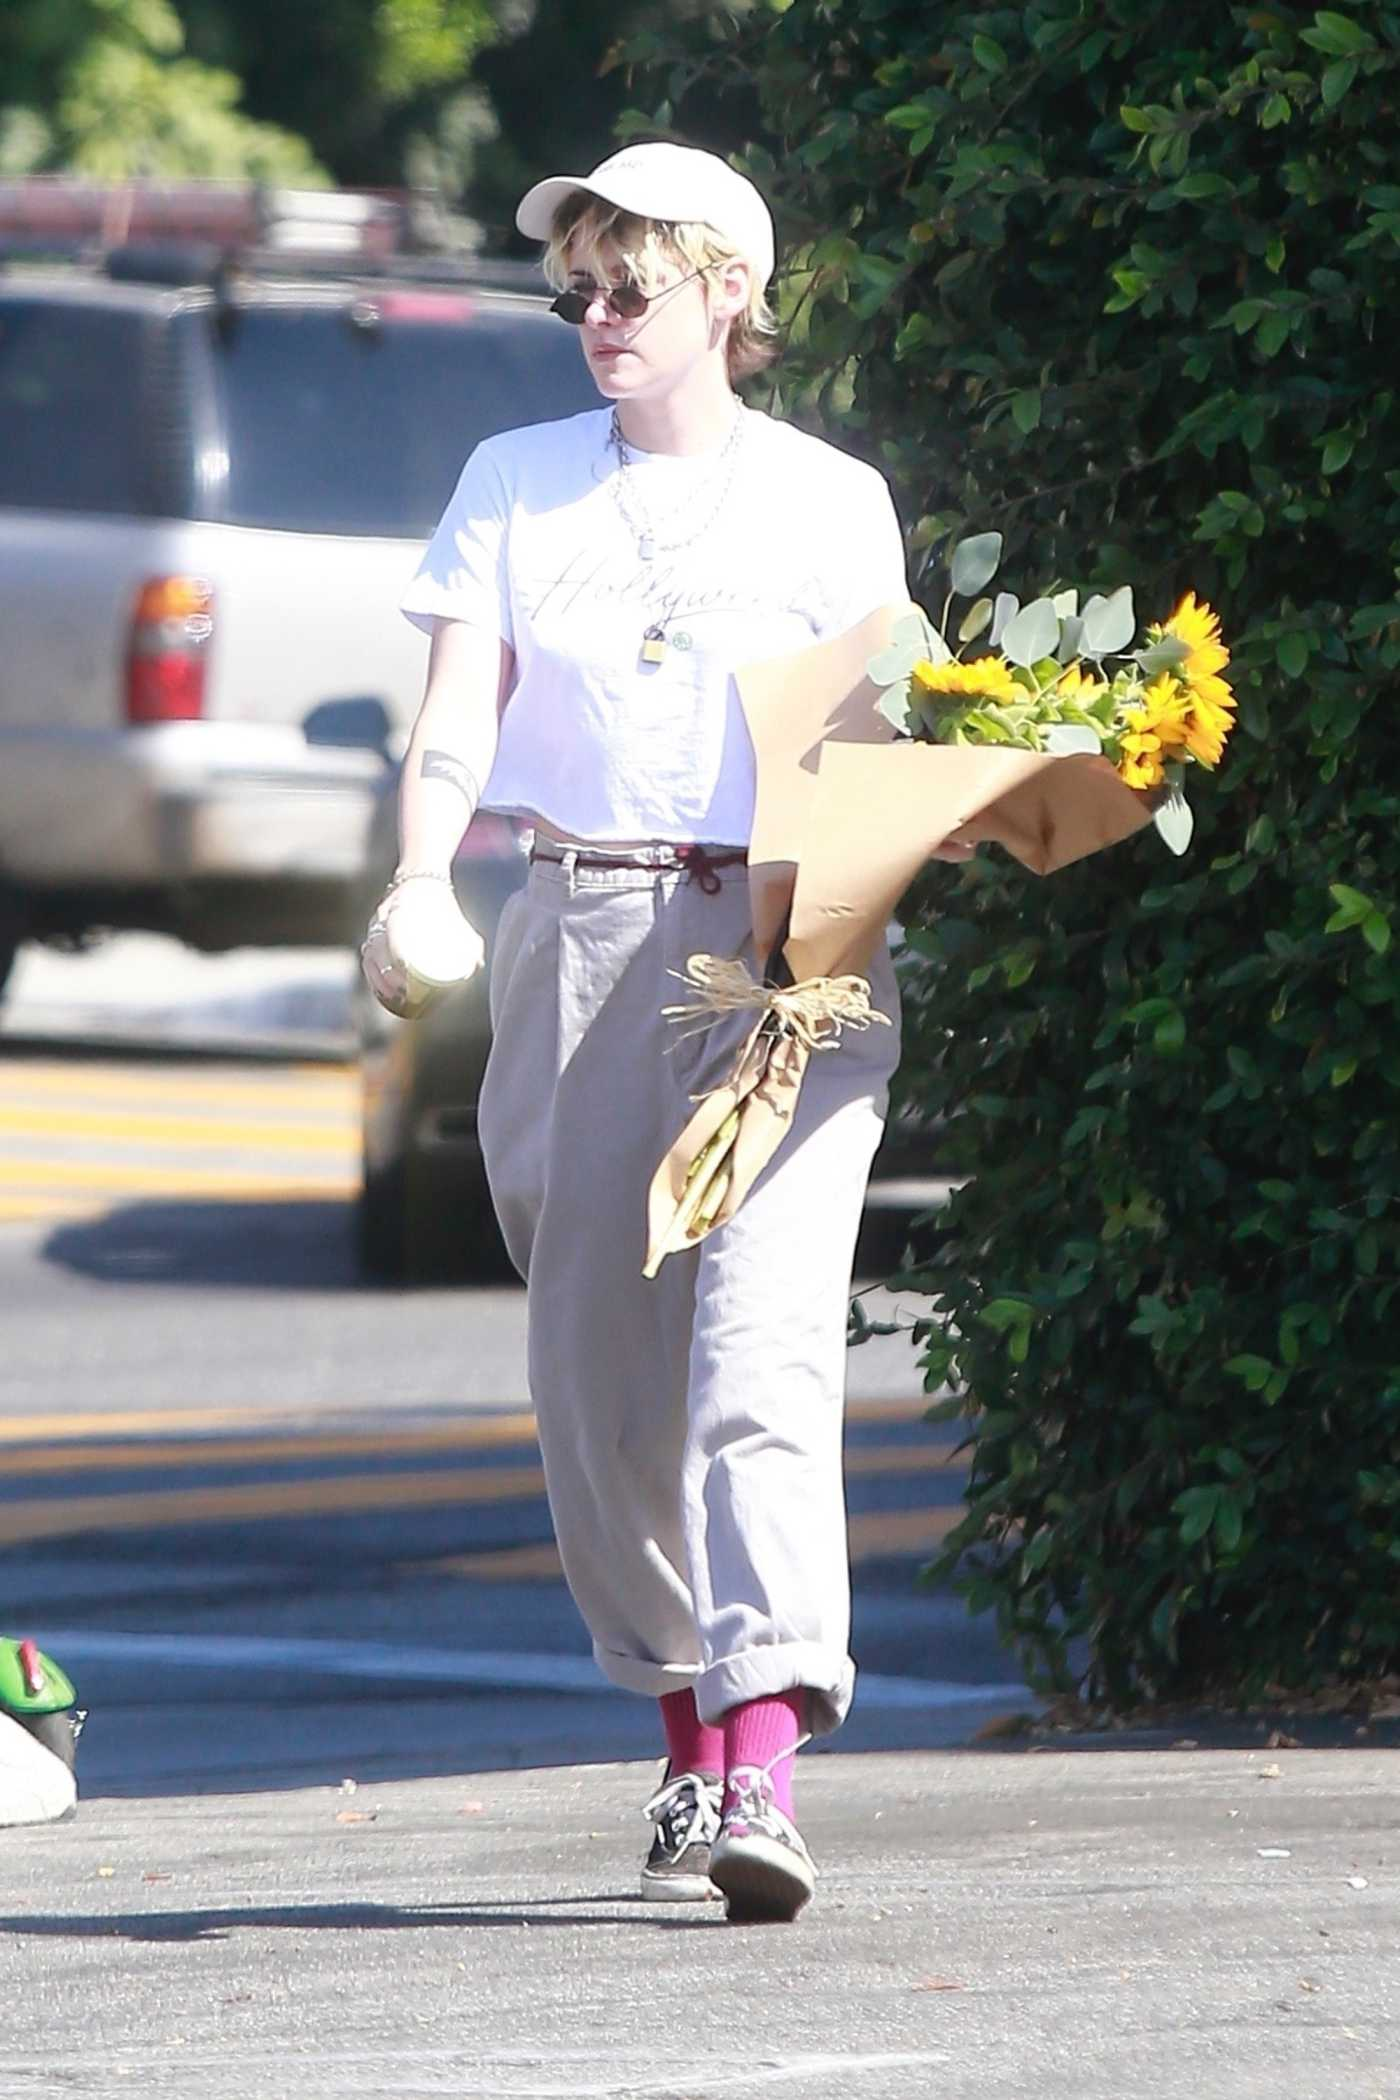 Kristen Stewart in a White Cap Purchased a Large Bouquet of Sunflowers Out in Los Angeles 10/18/2019